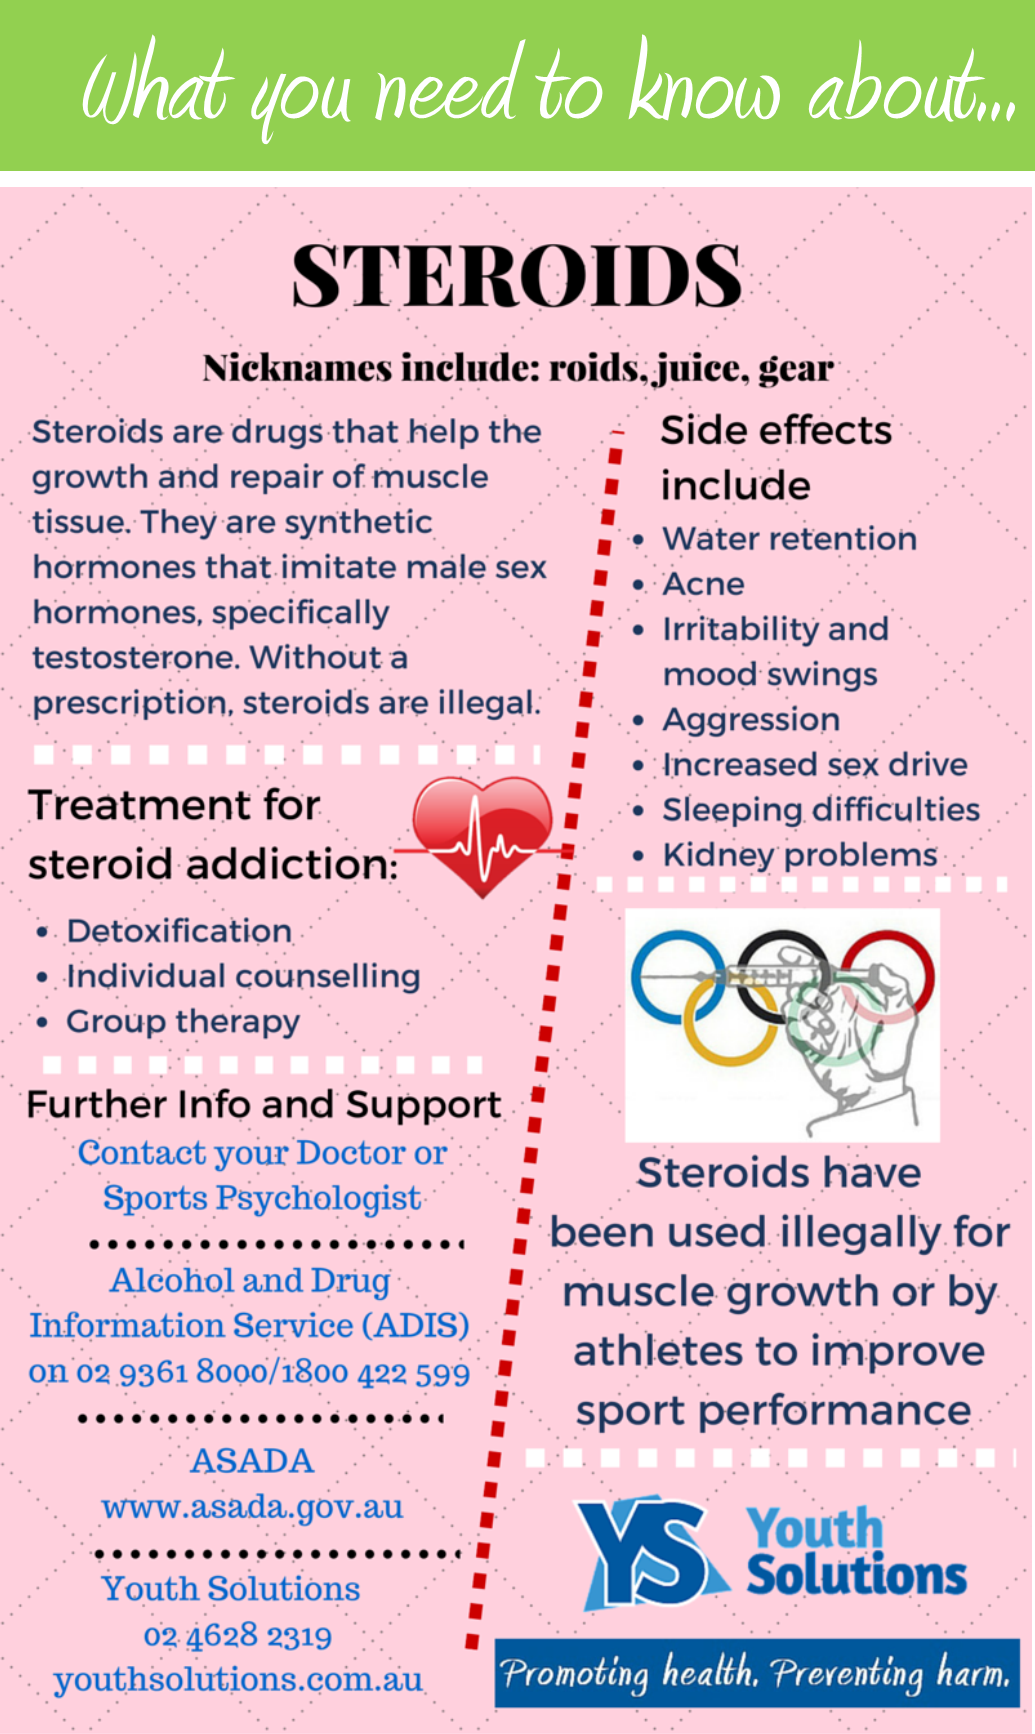 What you need to know about ... Steroids